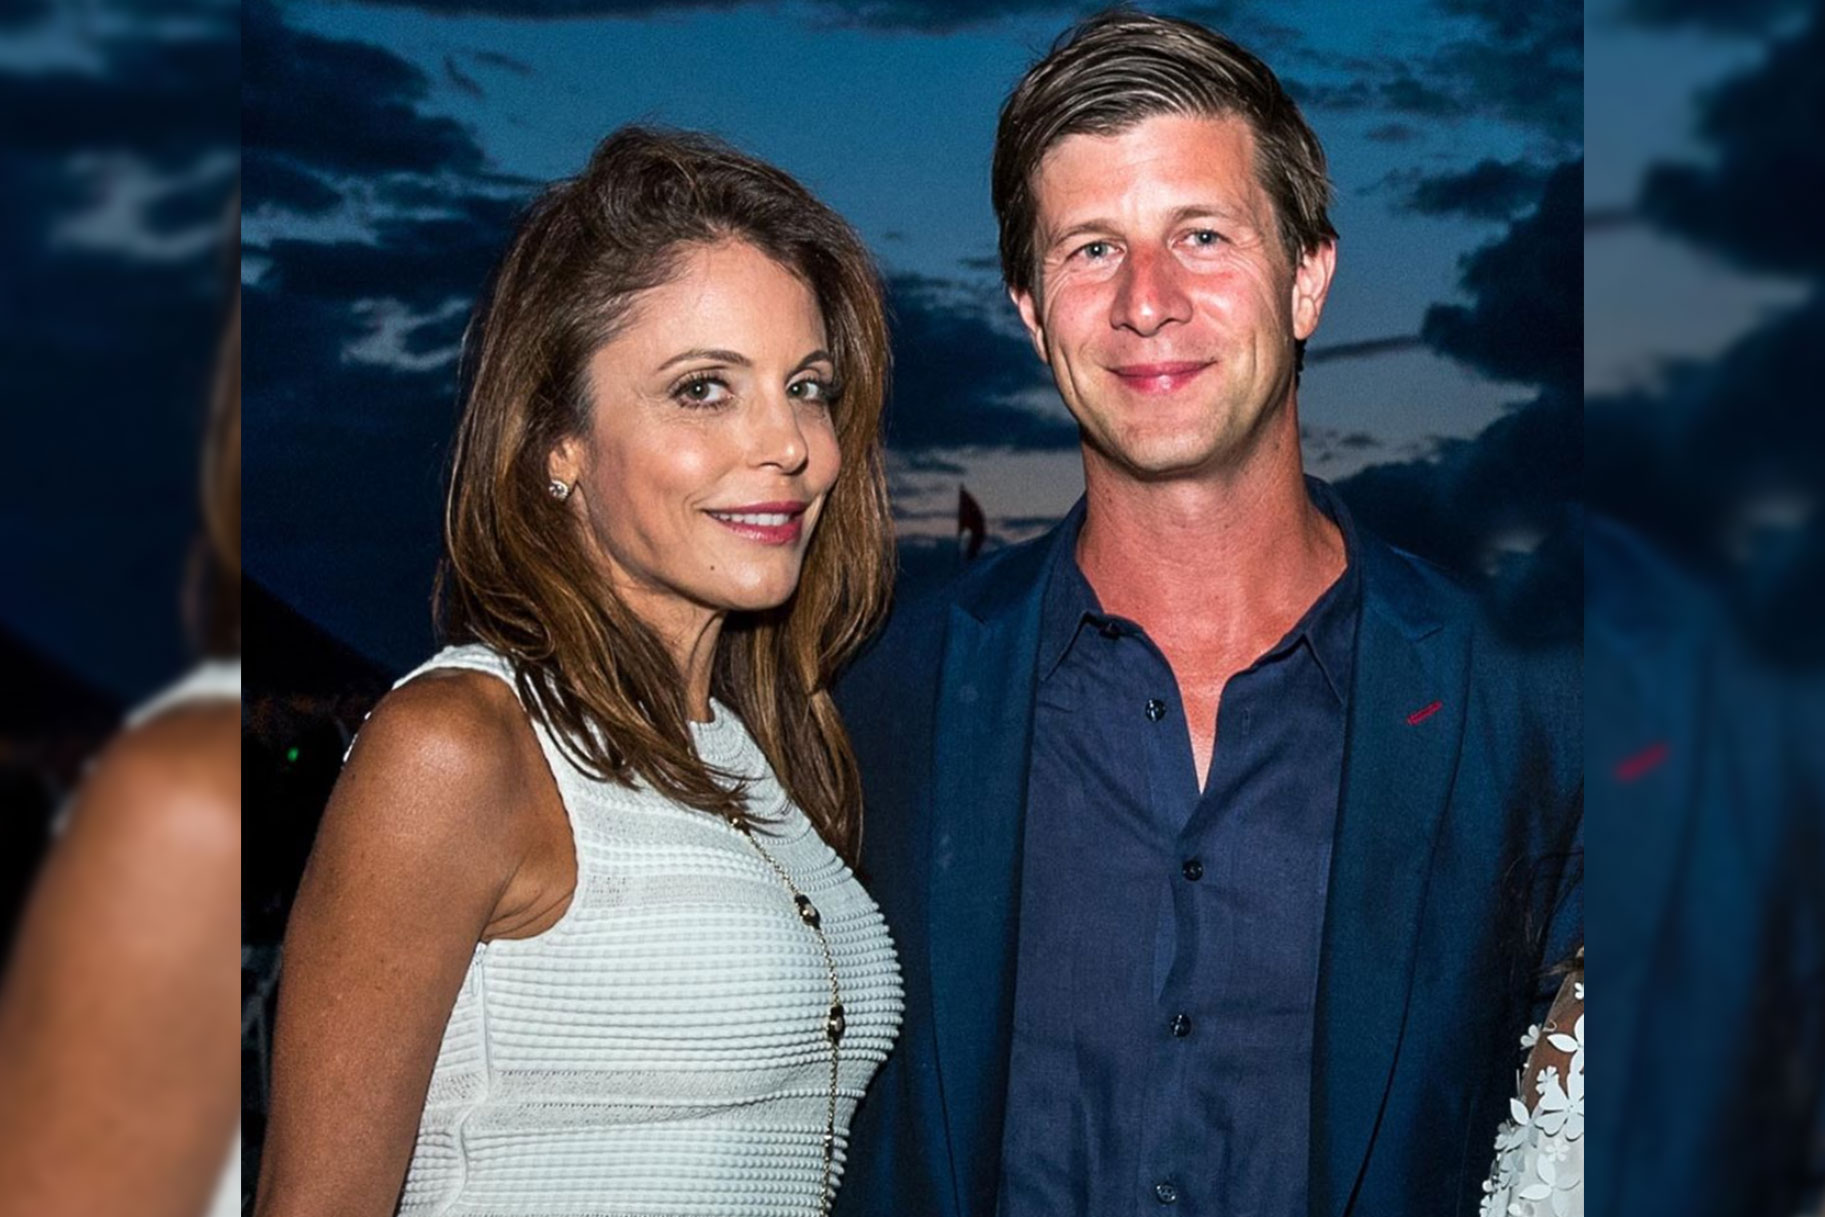 Bethenny Frankel Paul Bernon Update